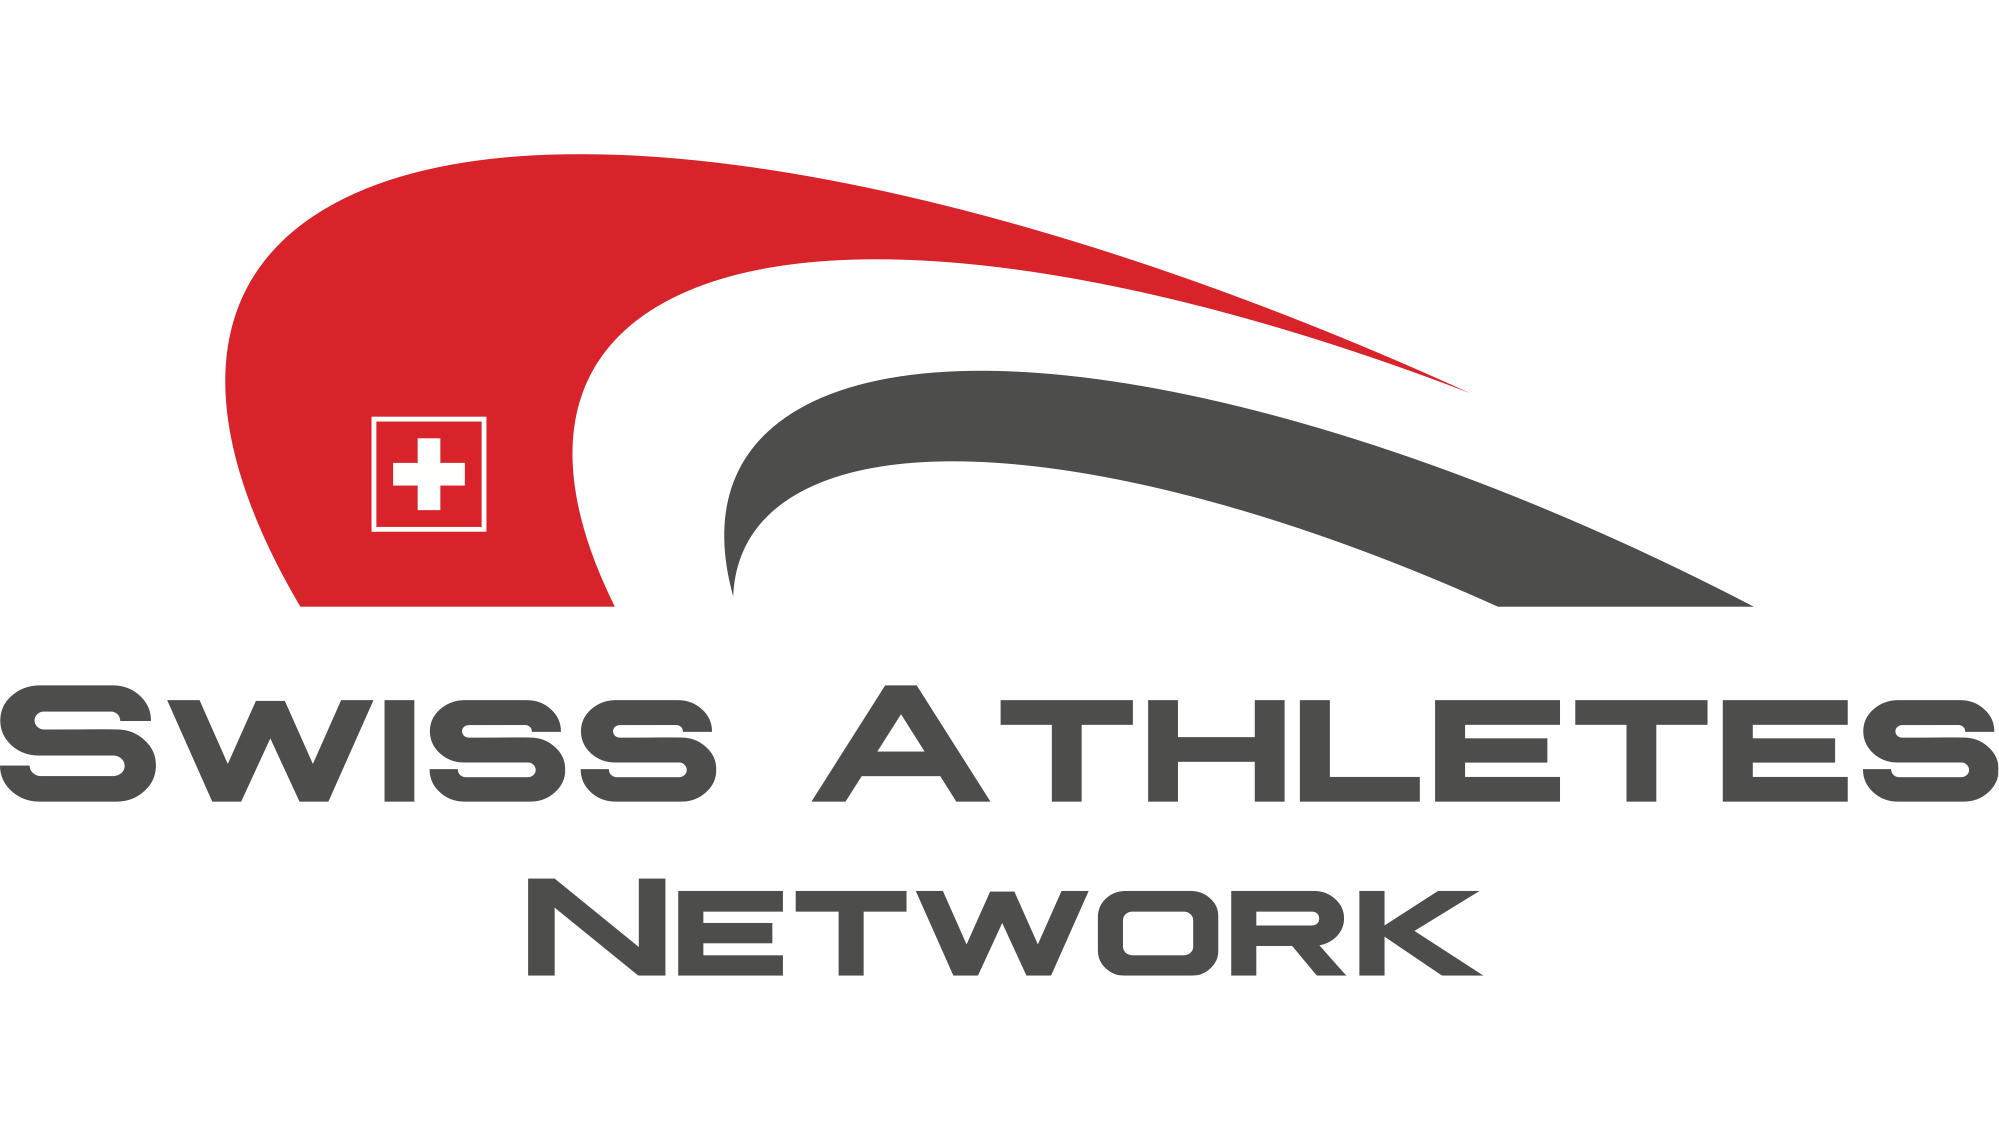 Swiss Athletes Network